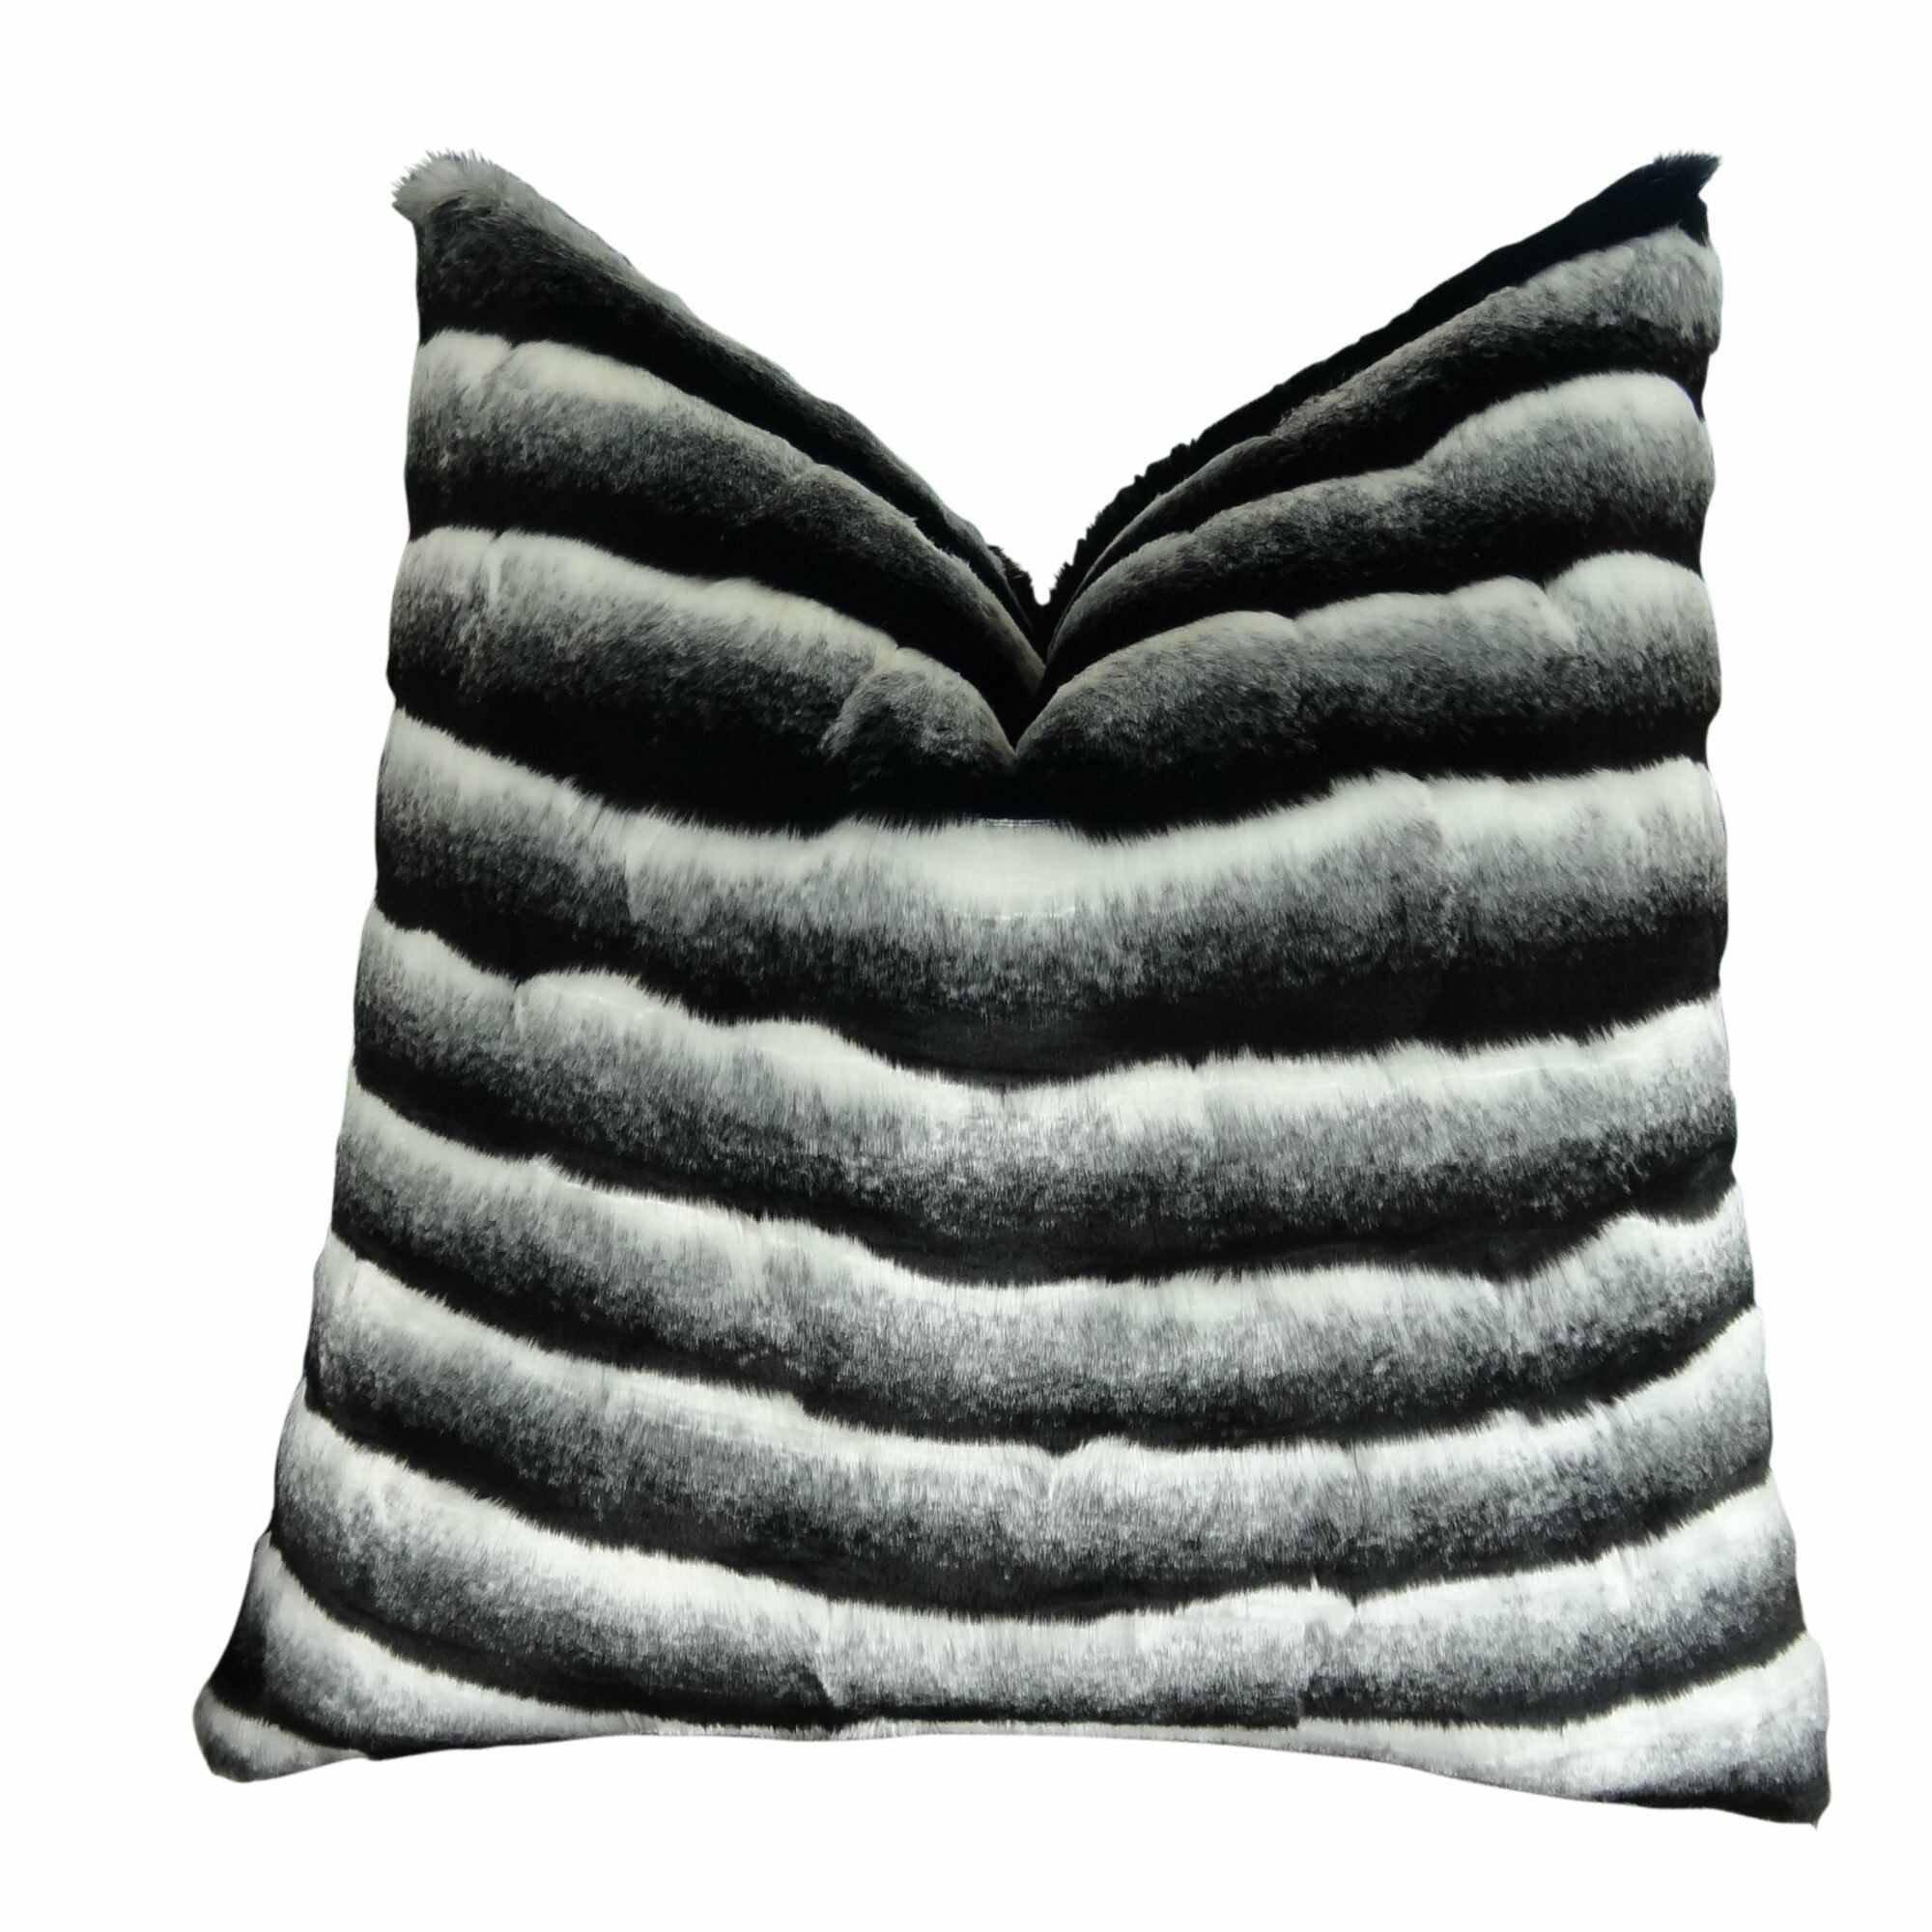 Joyal Chinchilla Faux Fur Pillow Size: 26